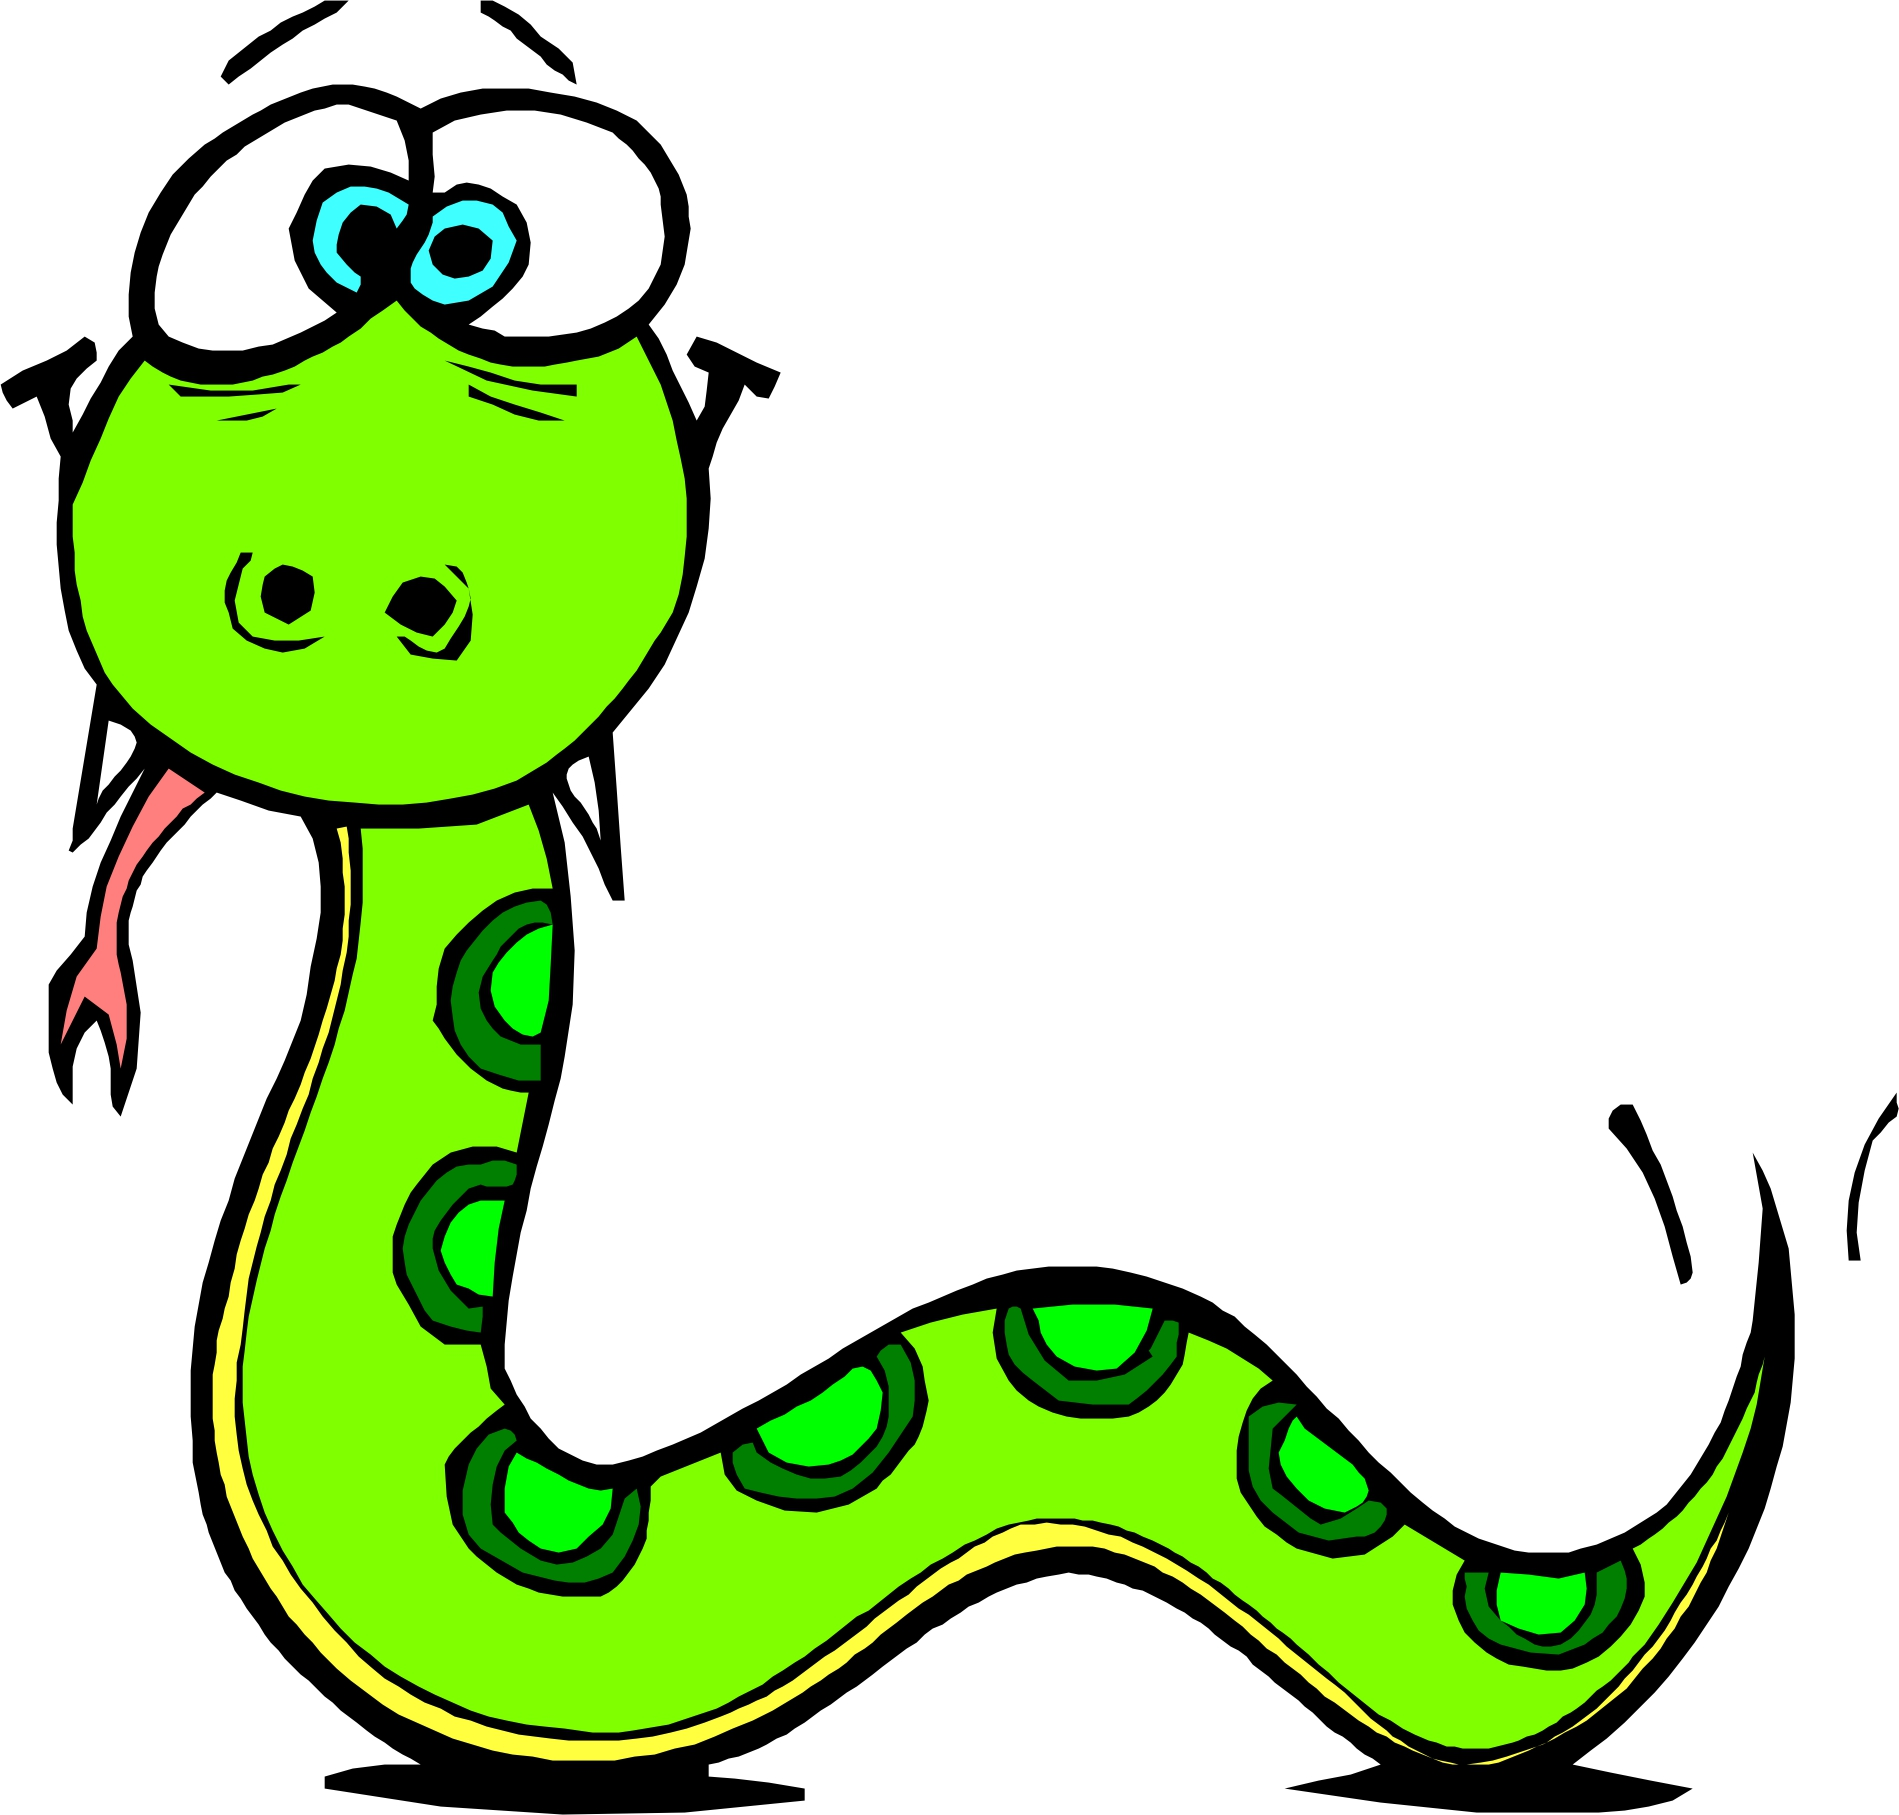 Snake pictures clipart png free Snake Clipart | Clipart Panda - Free Clipart Images png free